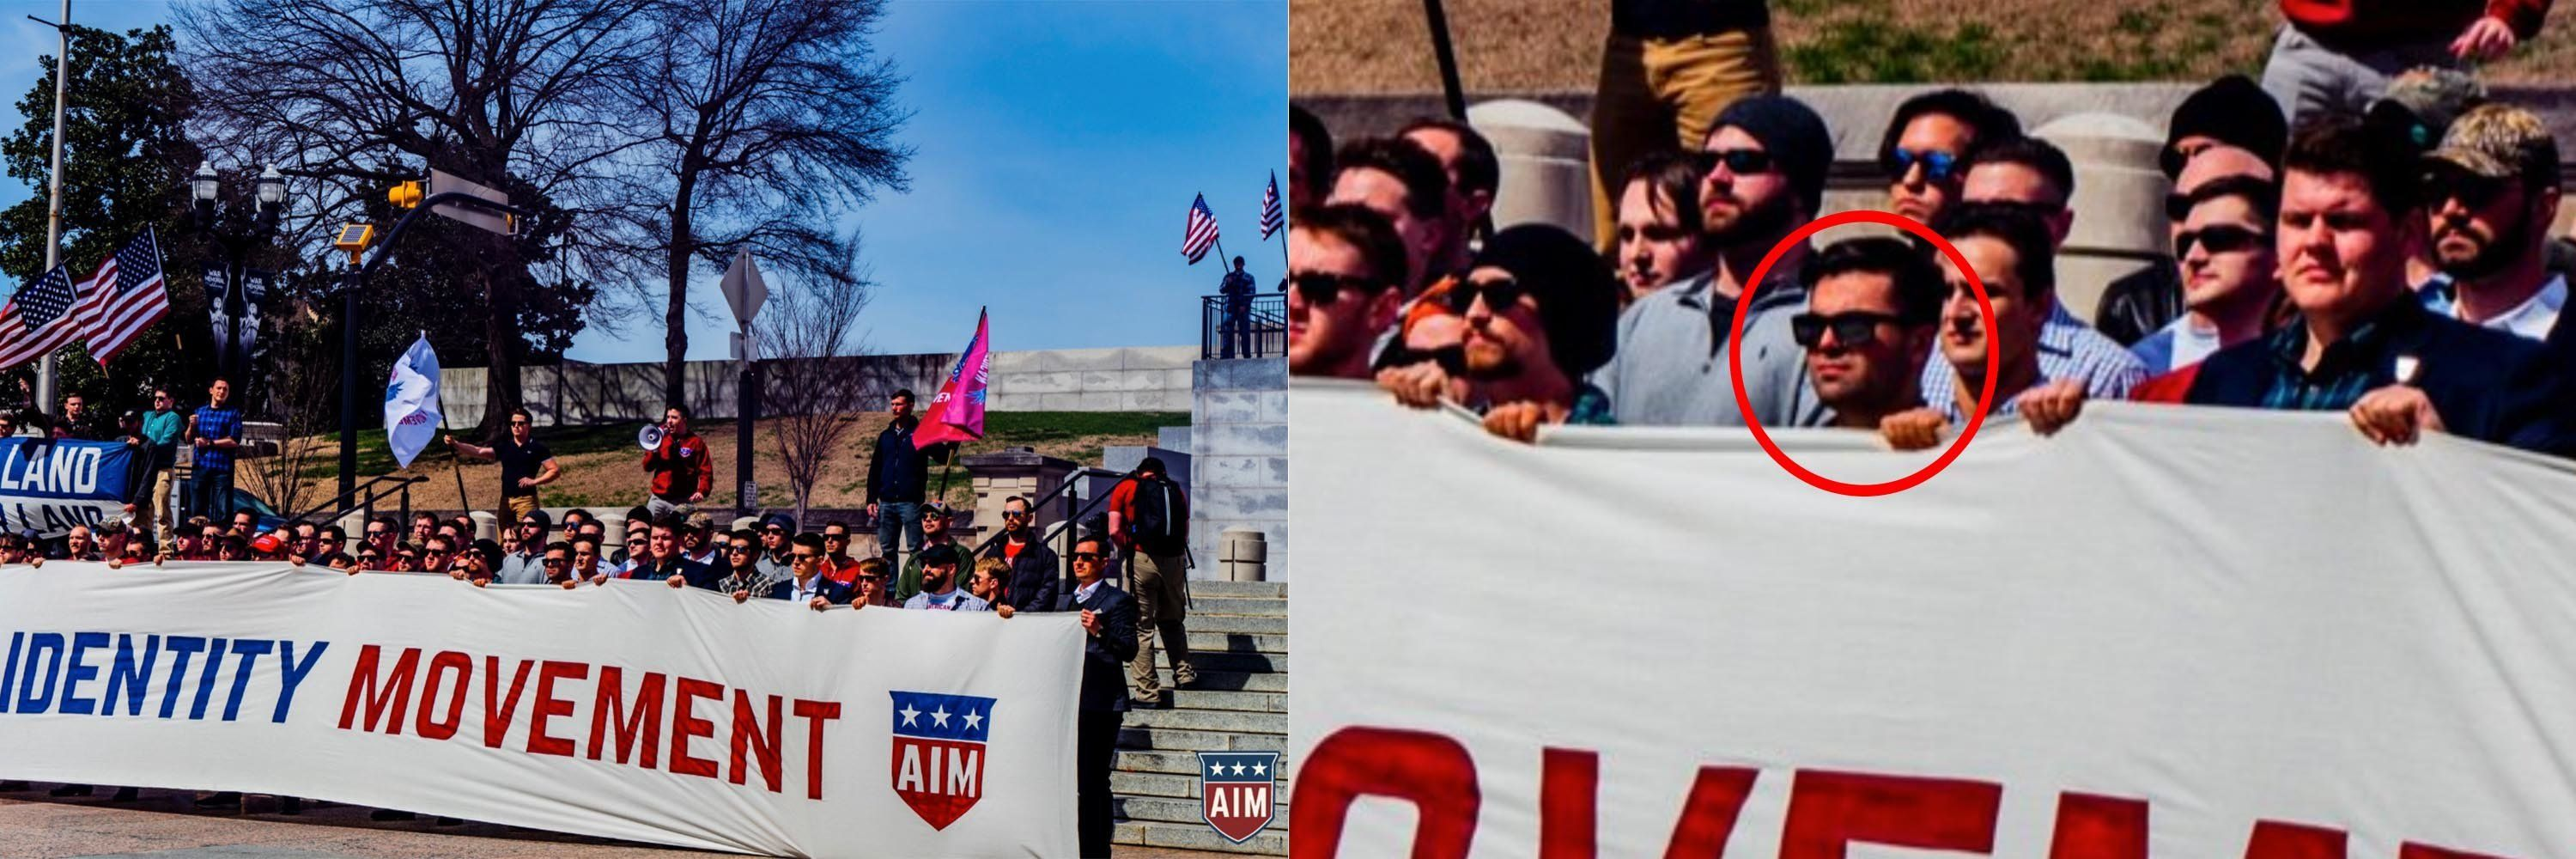 A photo from a gathering of the American Identity Movement, originally called Identity Evropa, posted to Twitter in March 201